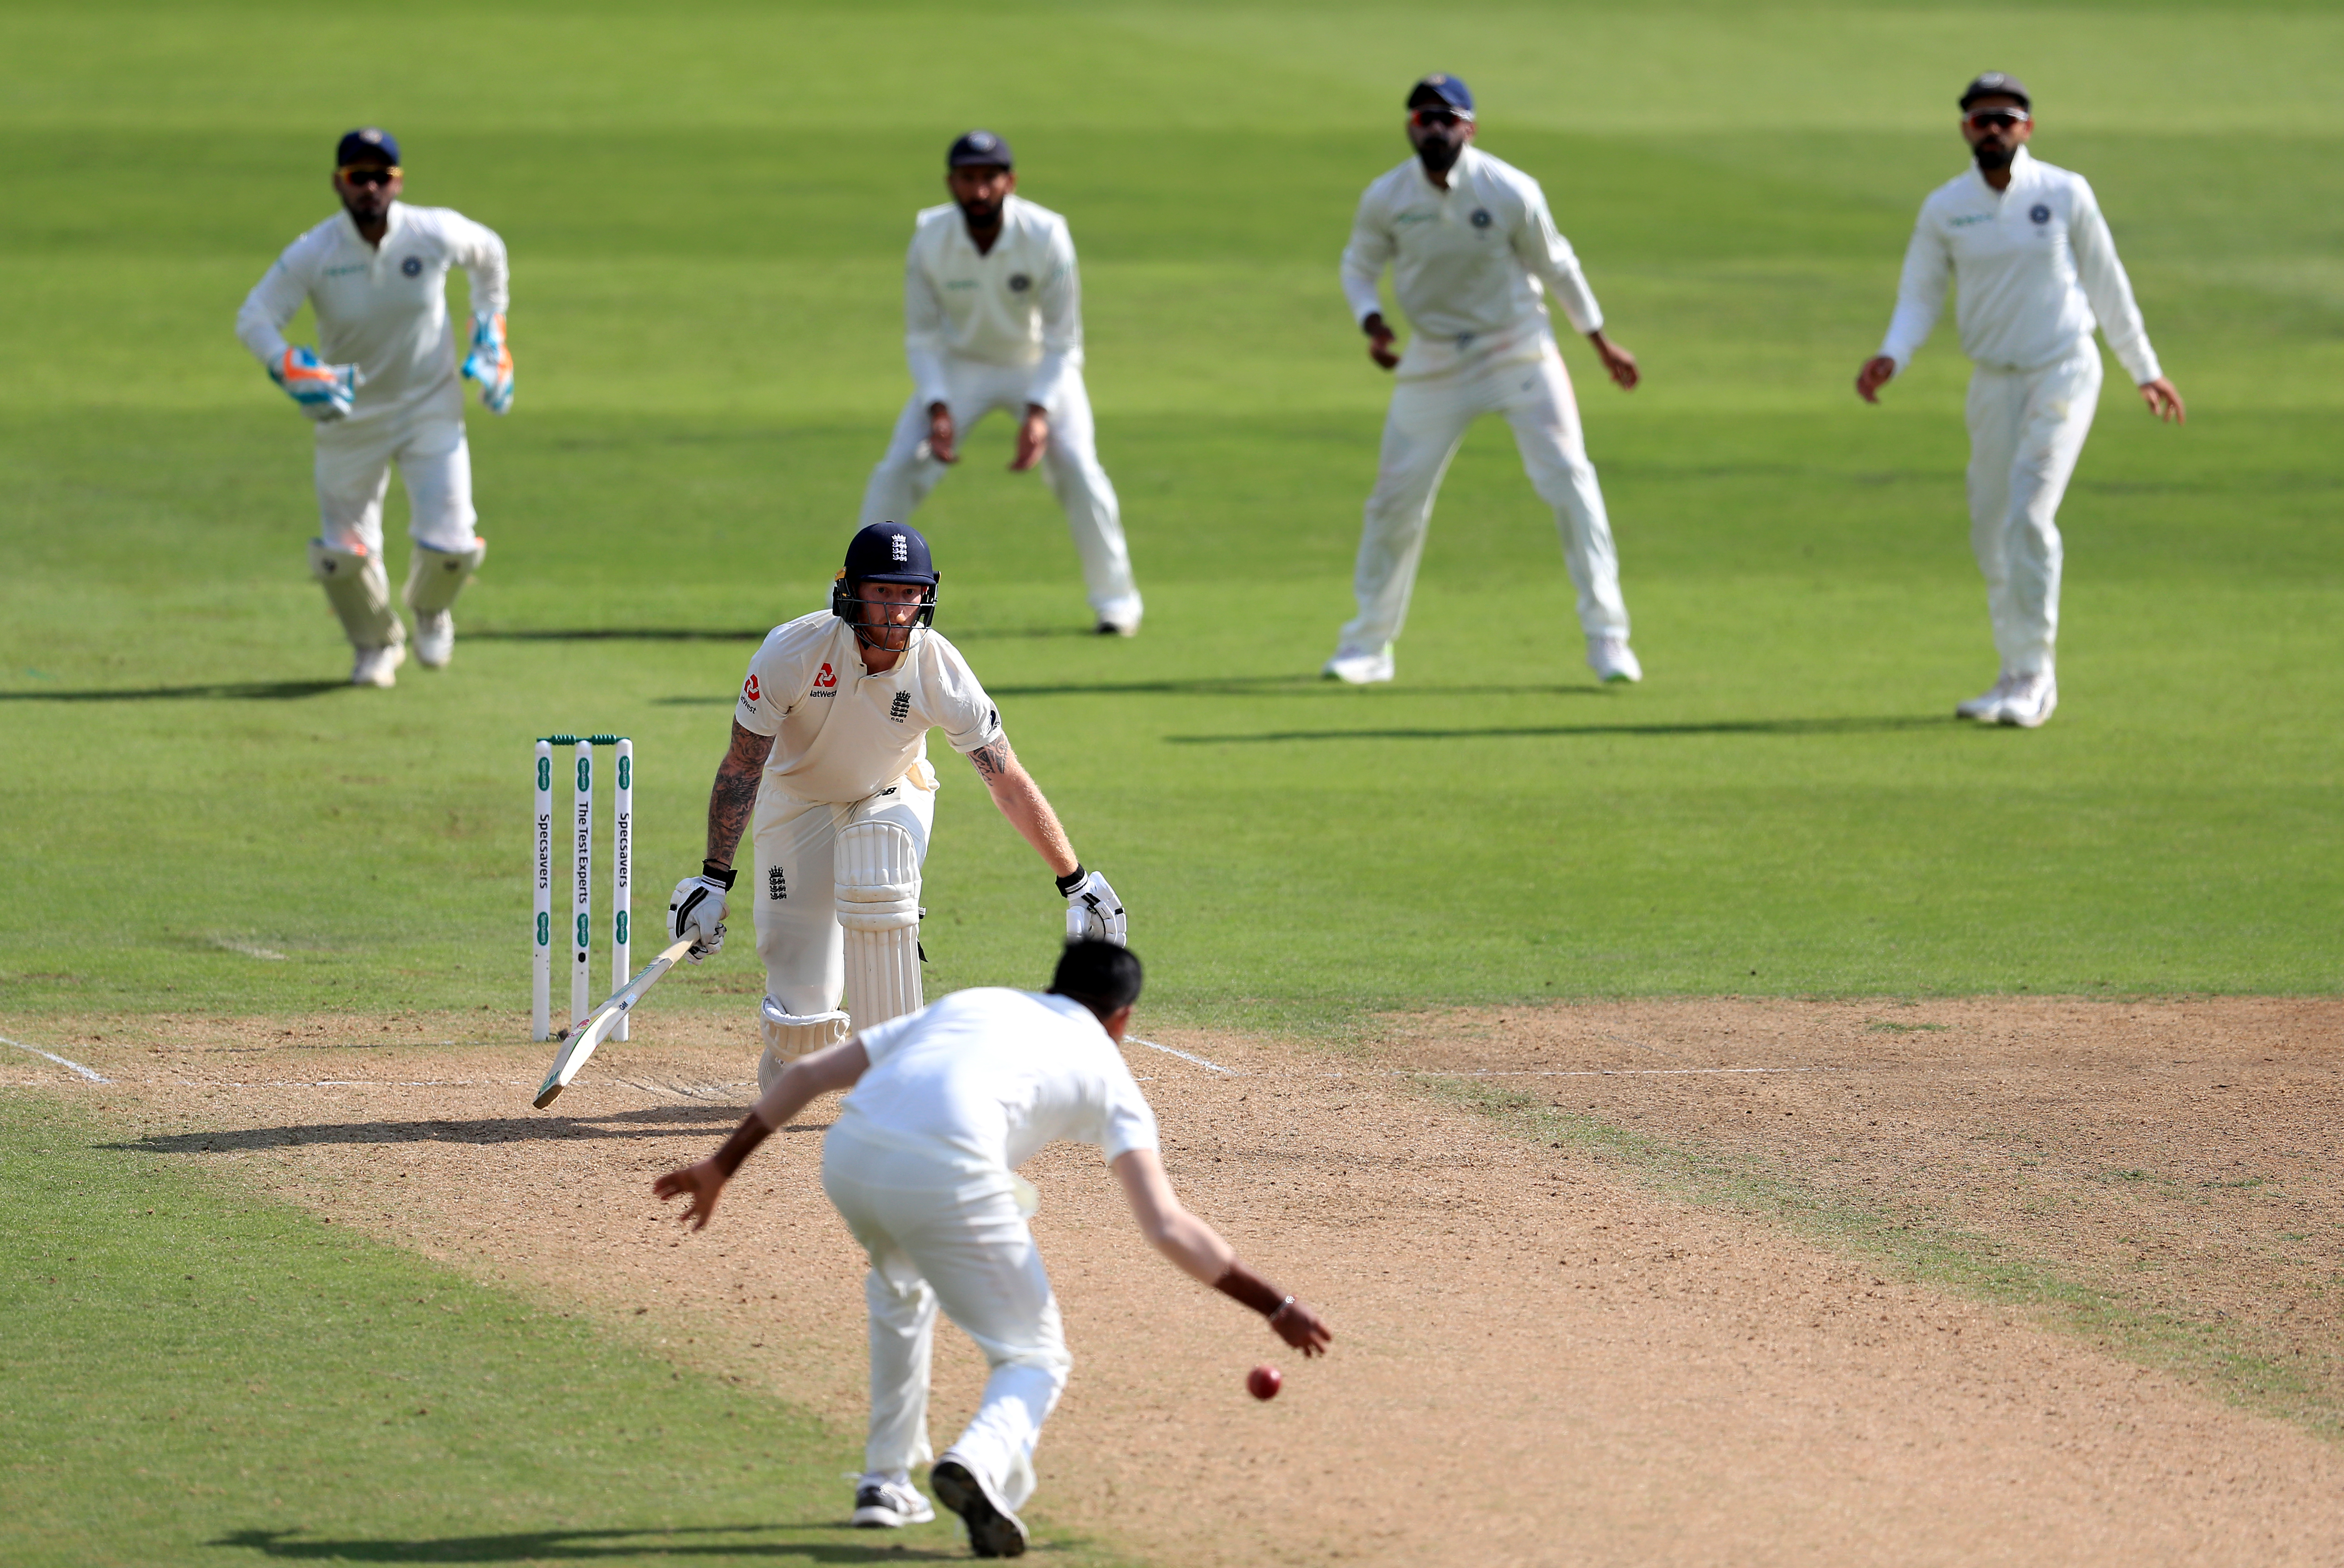 India reduce England to 84/4 at lunch in 3rd Test